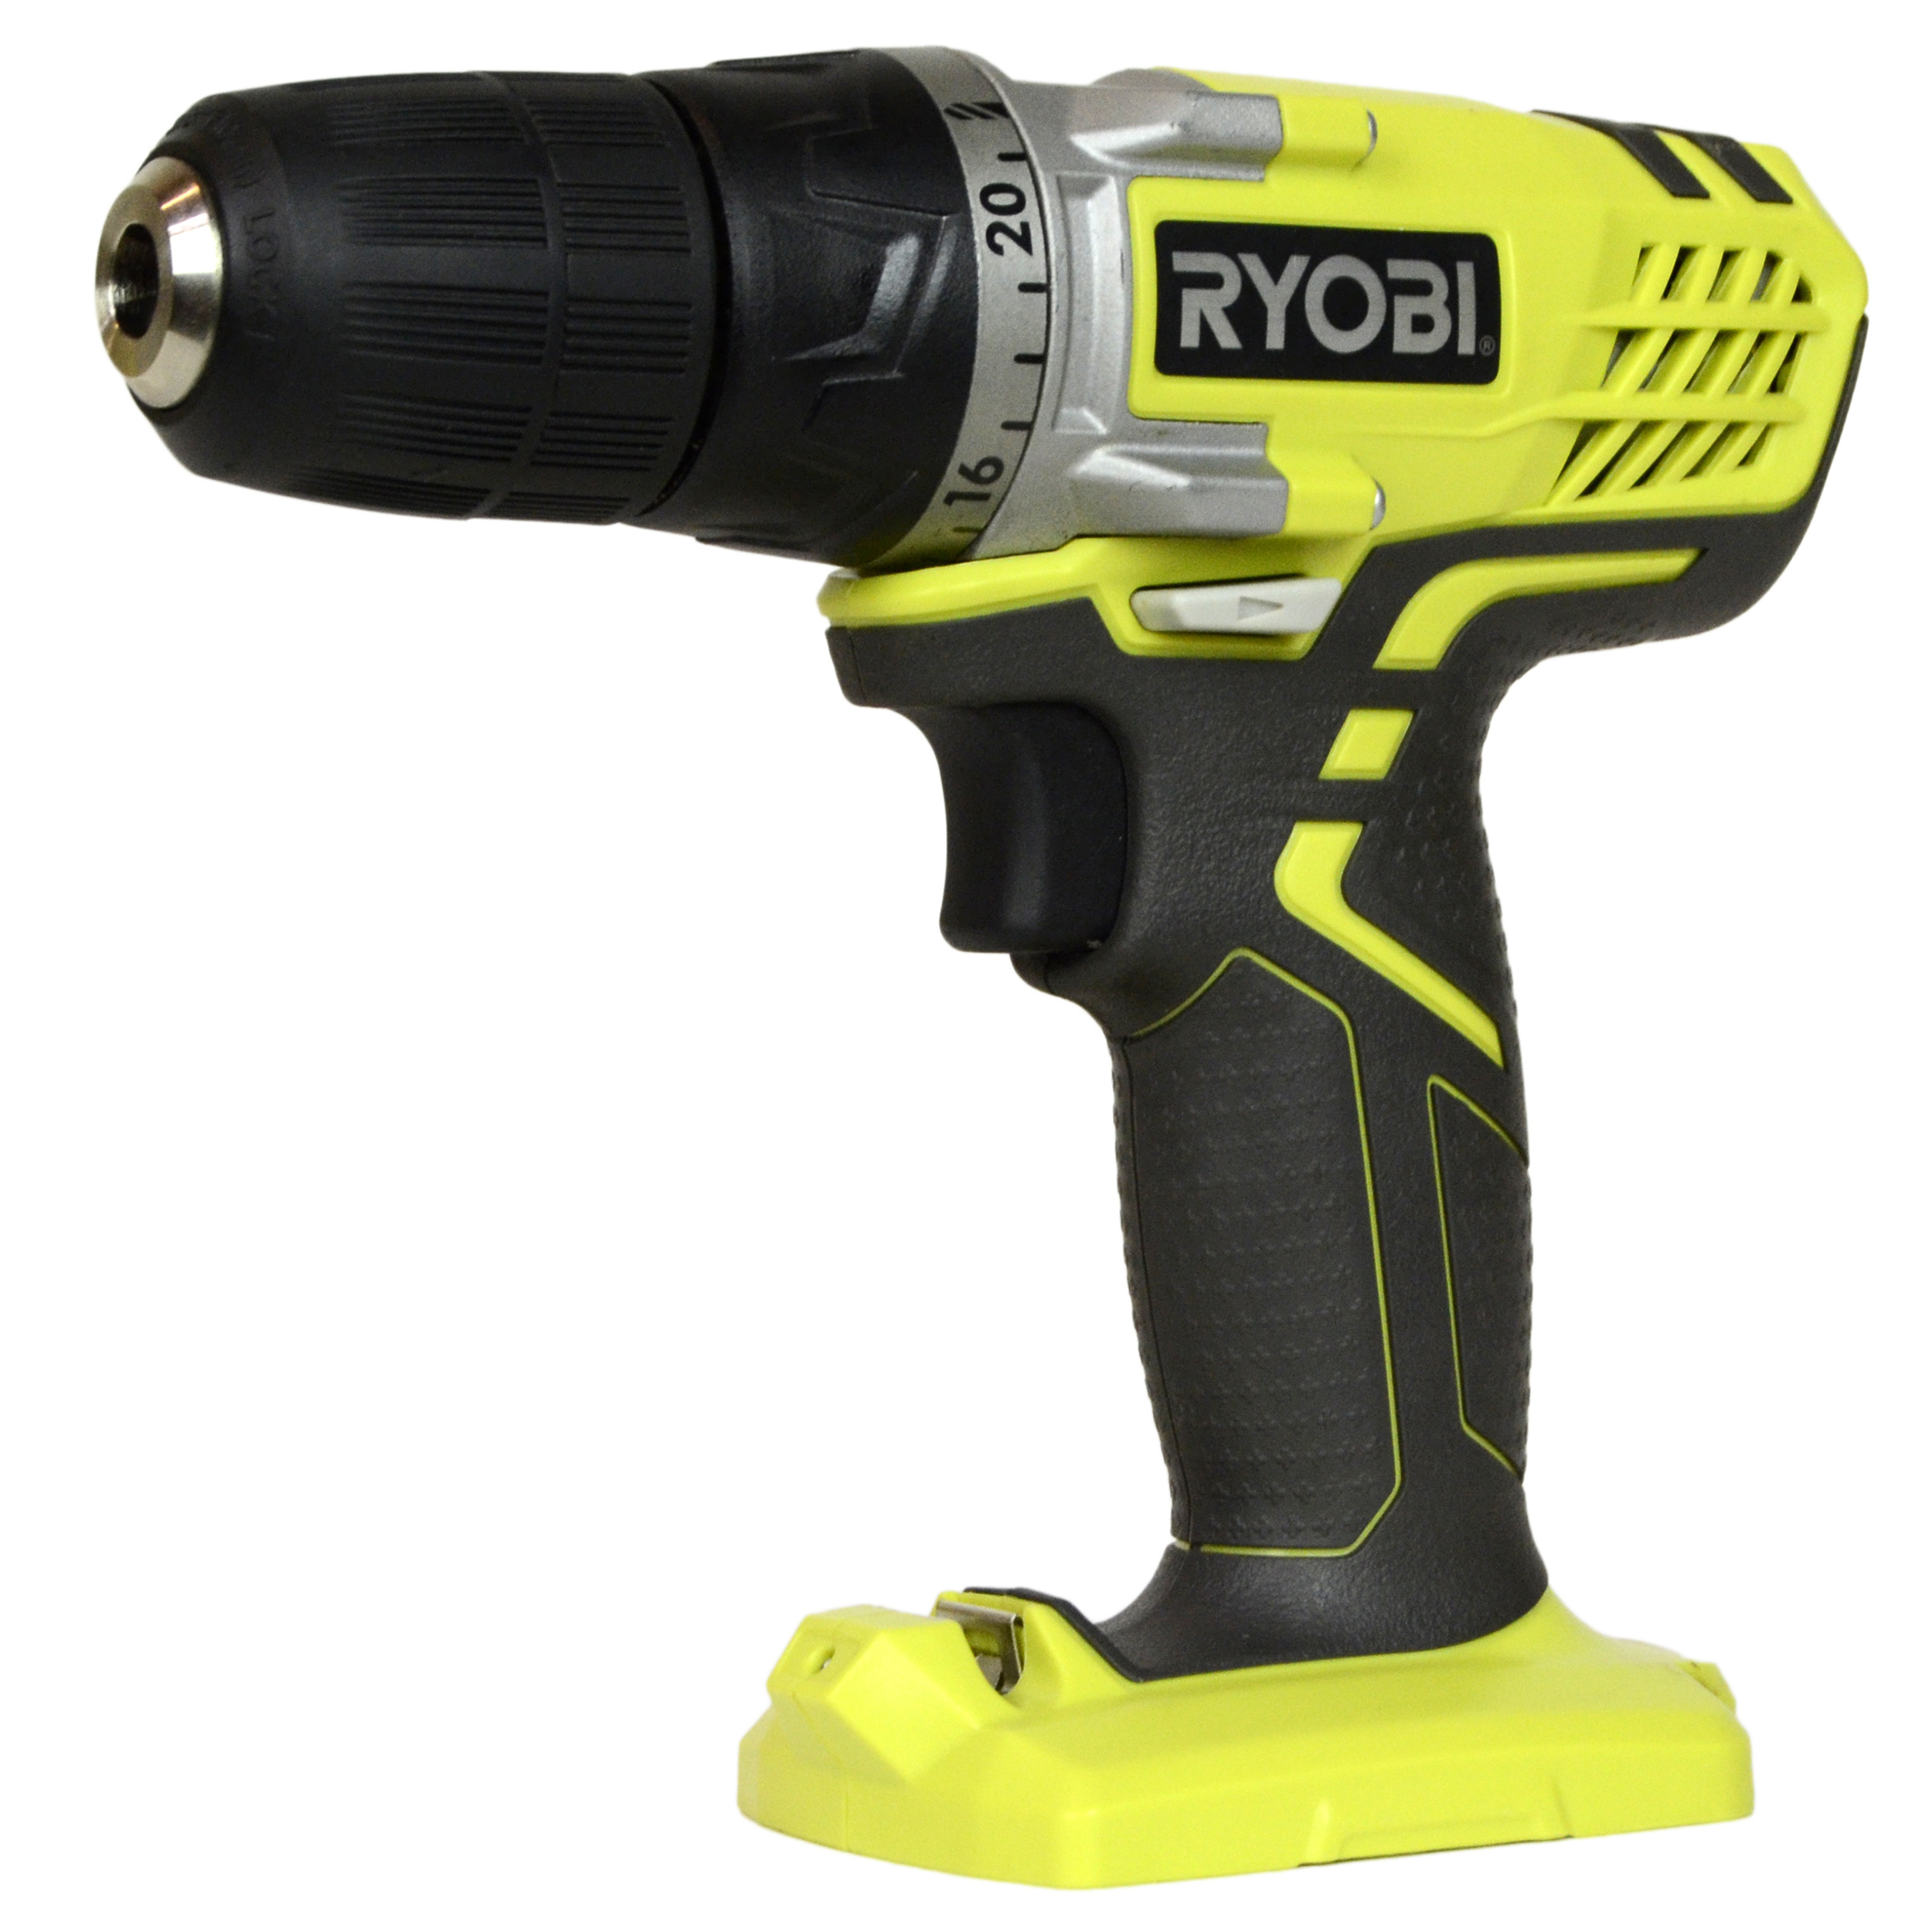 Ryobi Tools Reconditioned HJP003 12V 3 8� Lithium Ion Cordless Drill Driver, Tool Only by